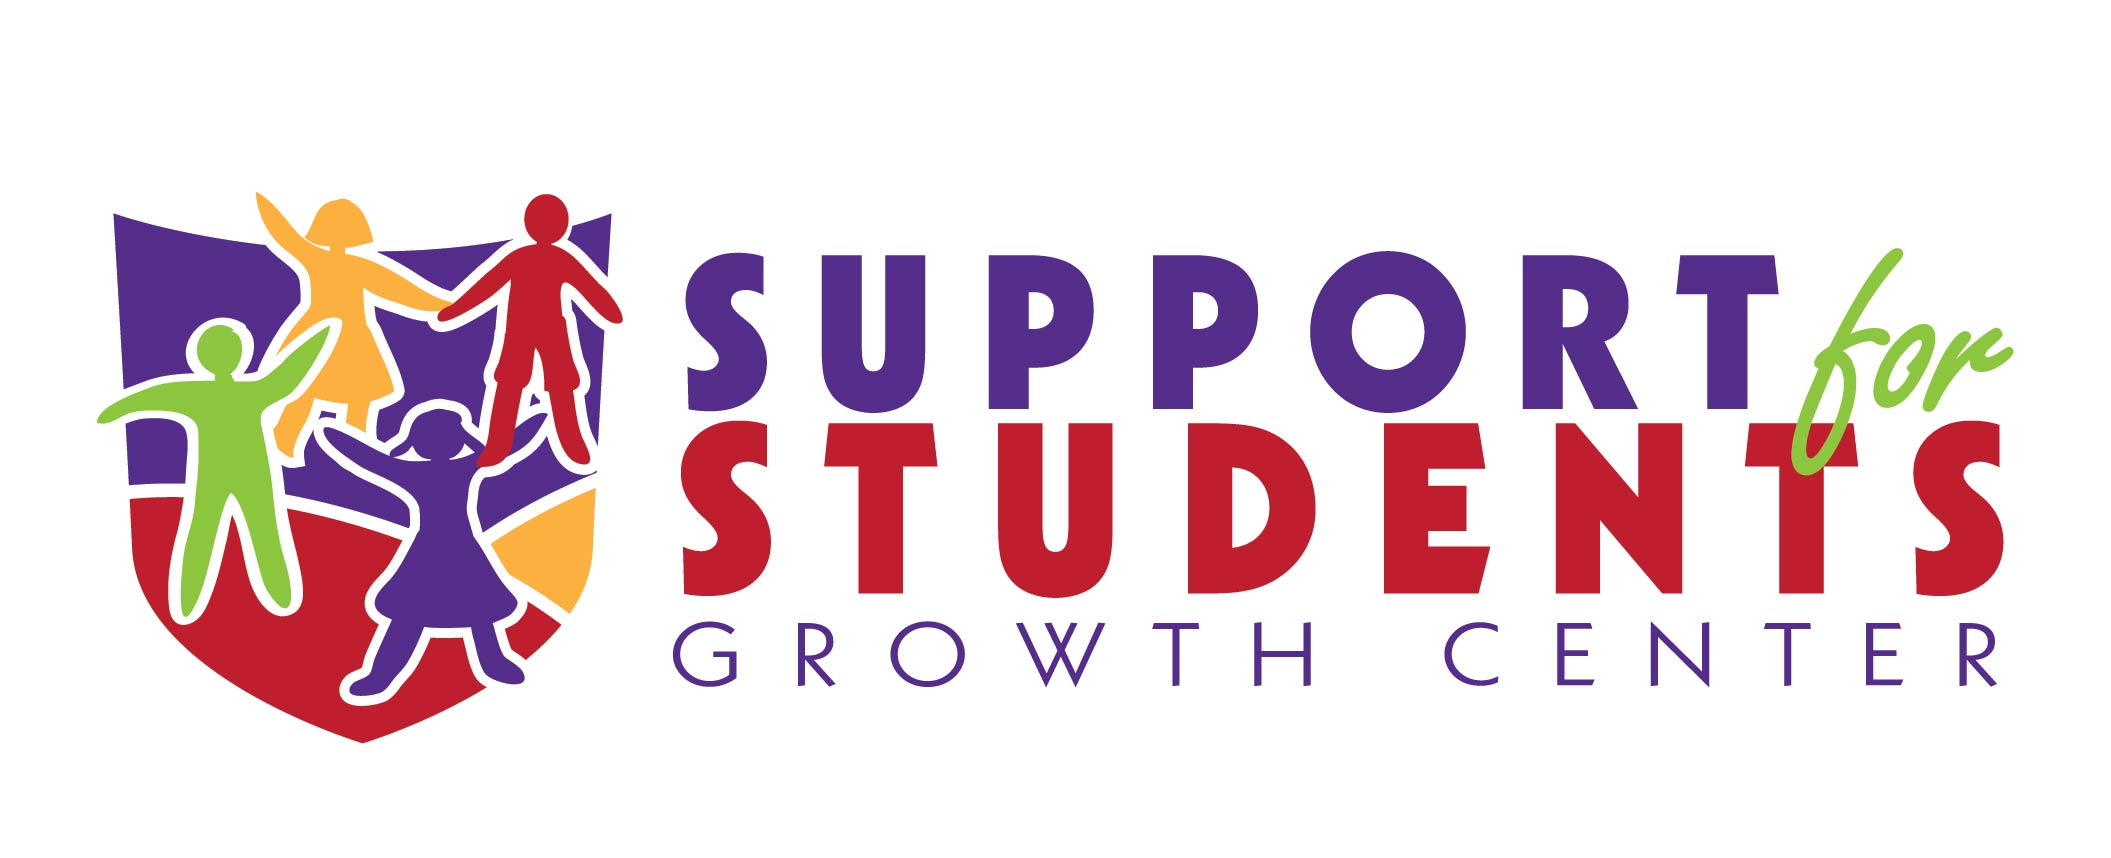 learning strategies and organizational skills programs support for students growth center